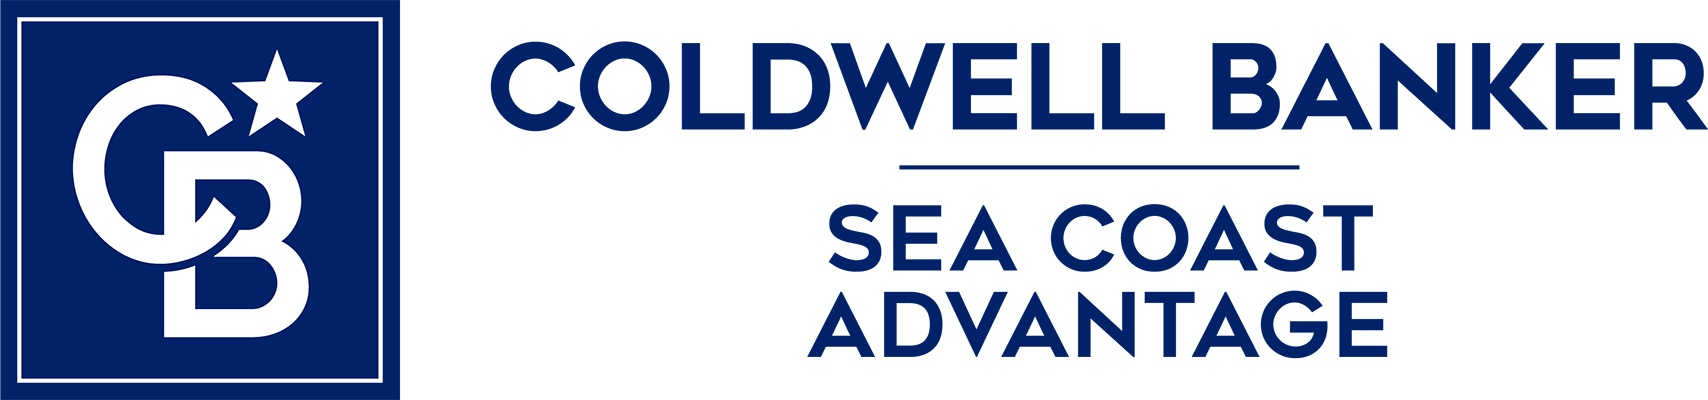 Sandy Borowiec - Coldwell Banker Sea Coast Advantage Realty